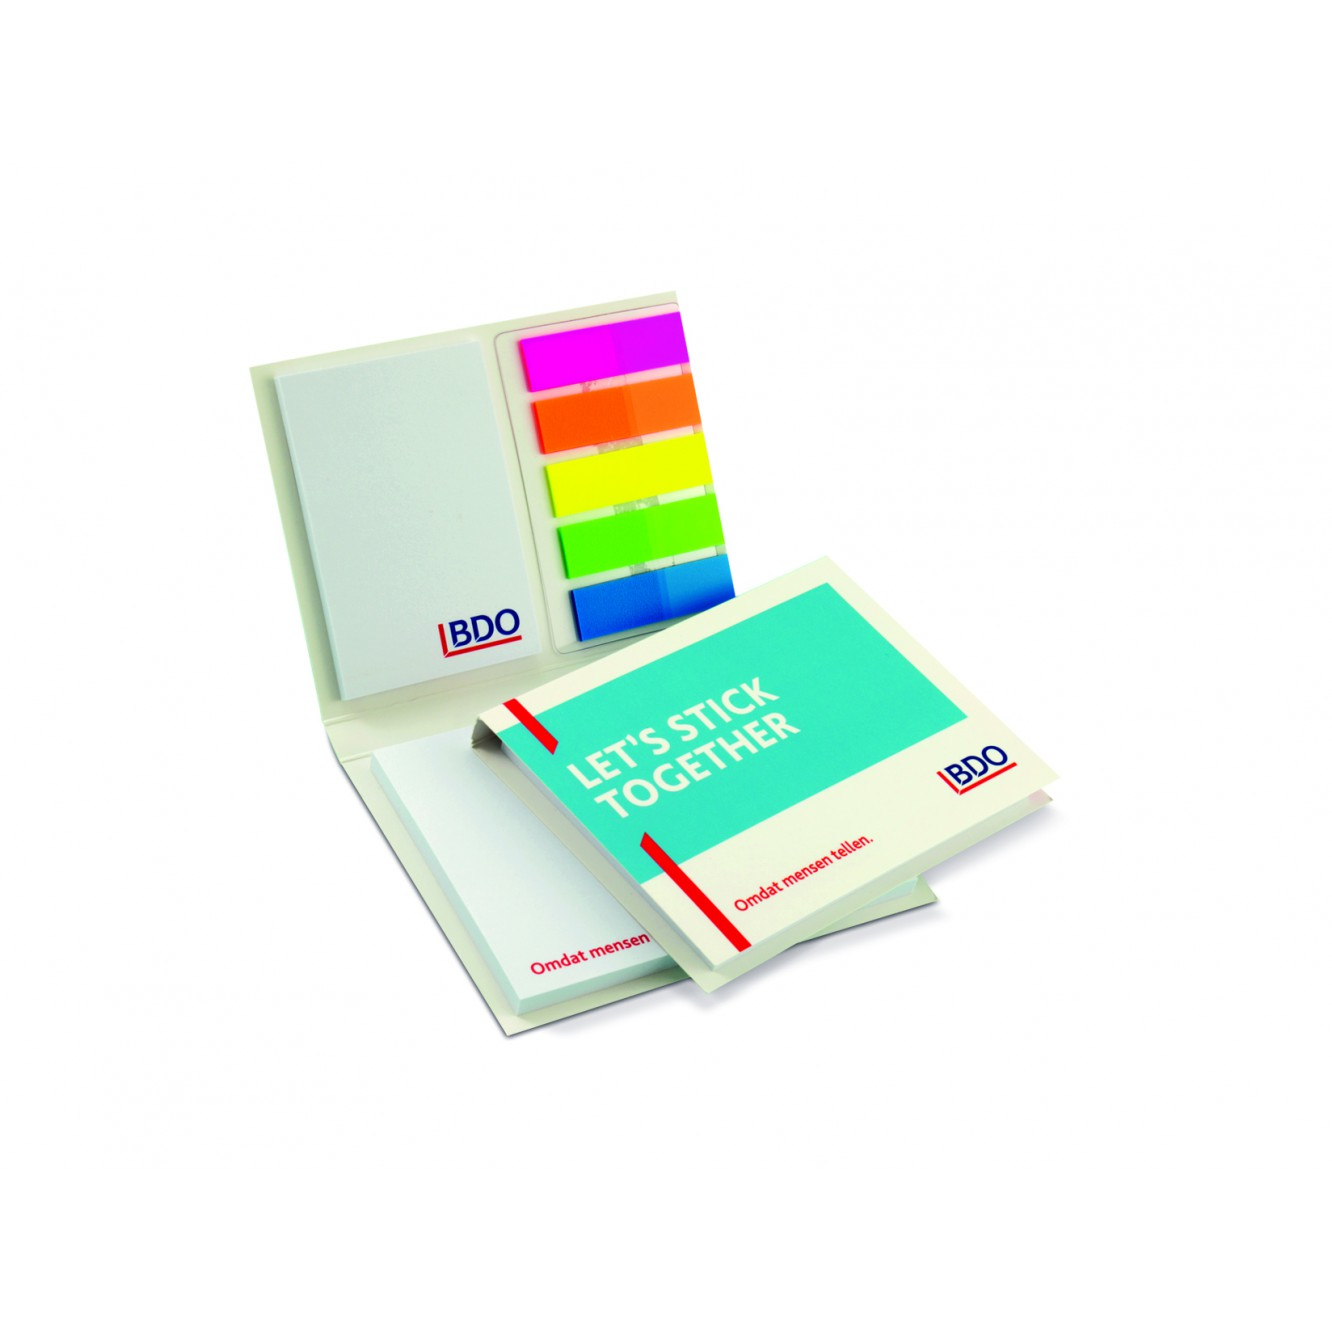 Softcover combi set 106 x 77 x 8 mm